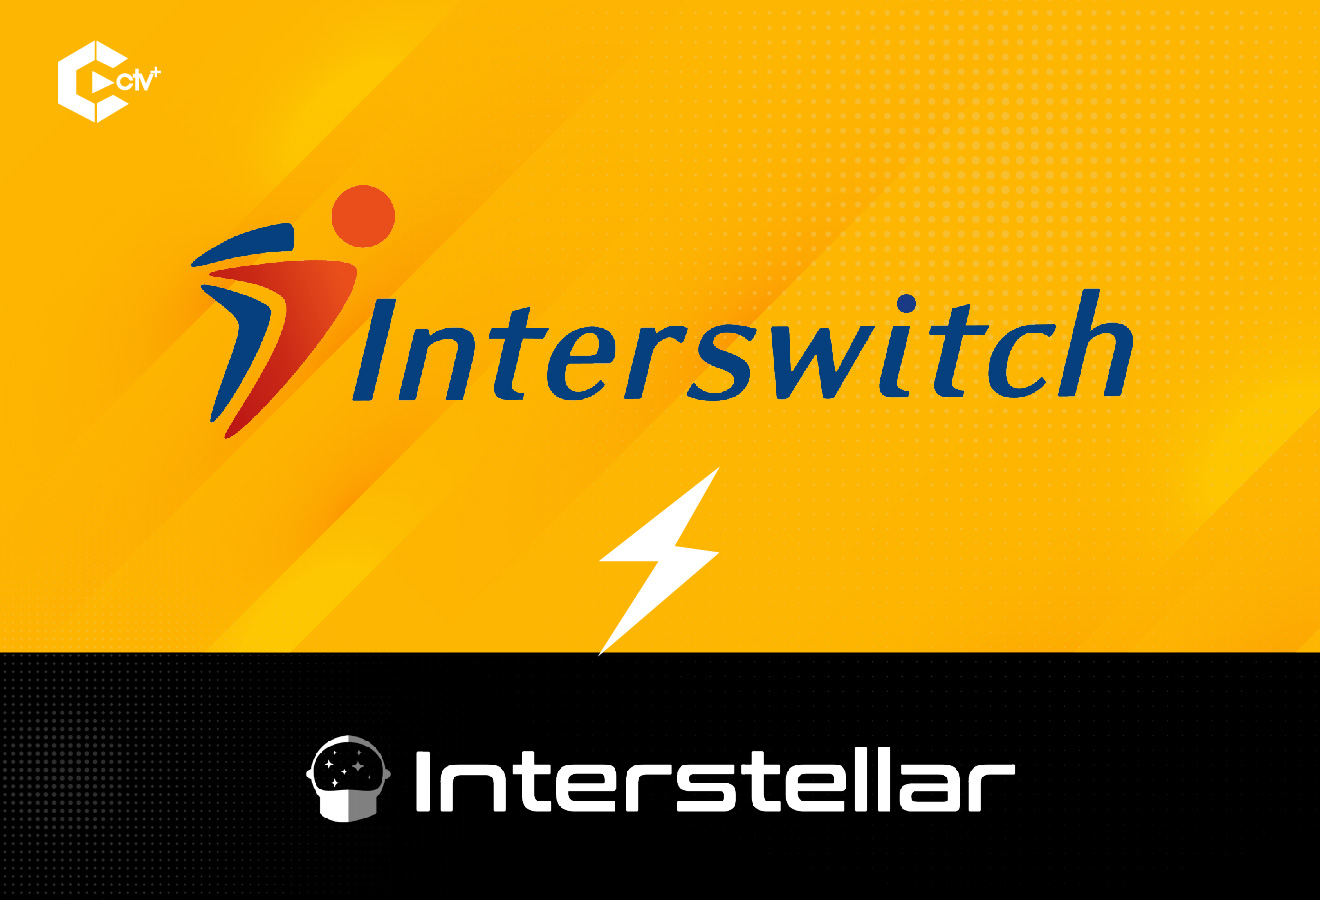 Akeem Lawal, Divisional Chief Executive Officer for Transaction Switching and Payment Processing at Interswitch